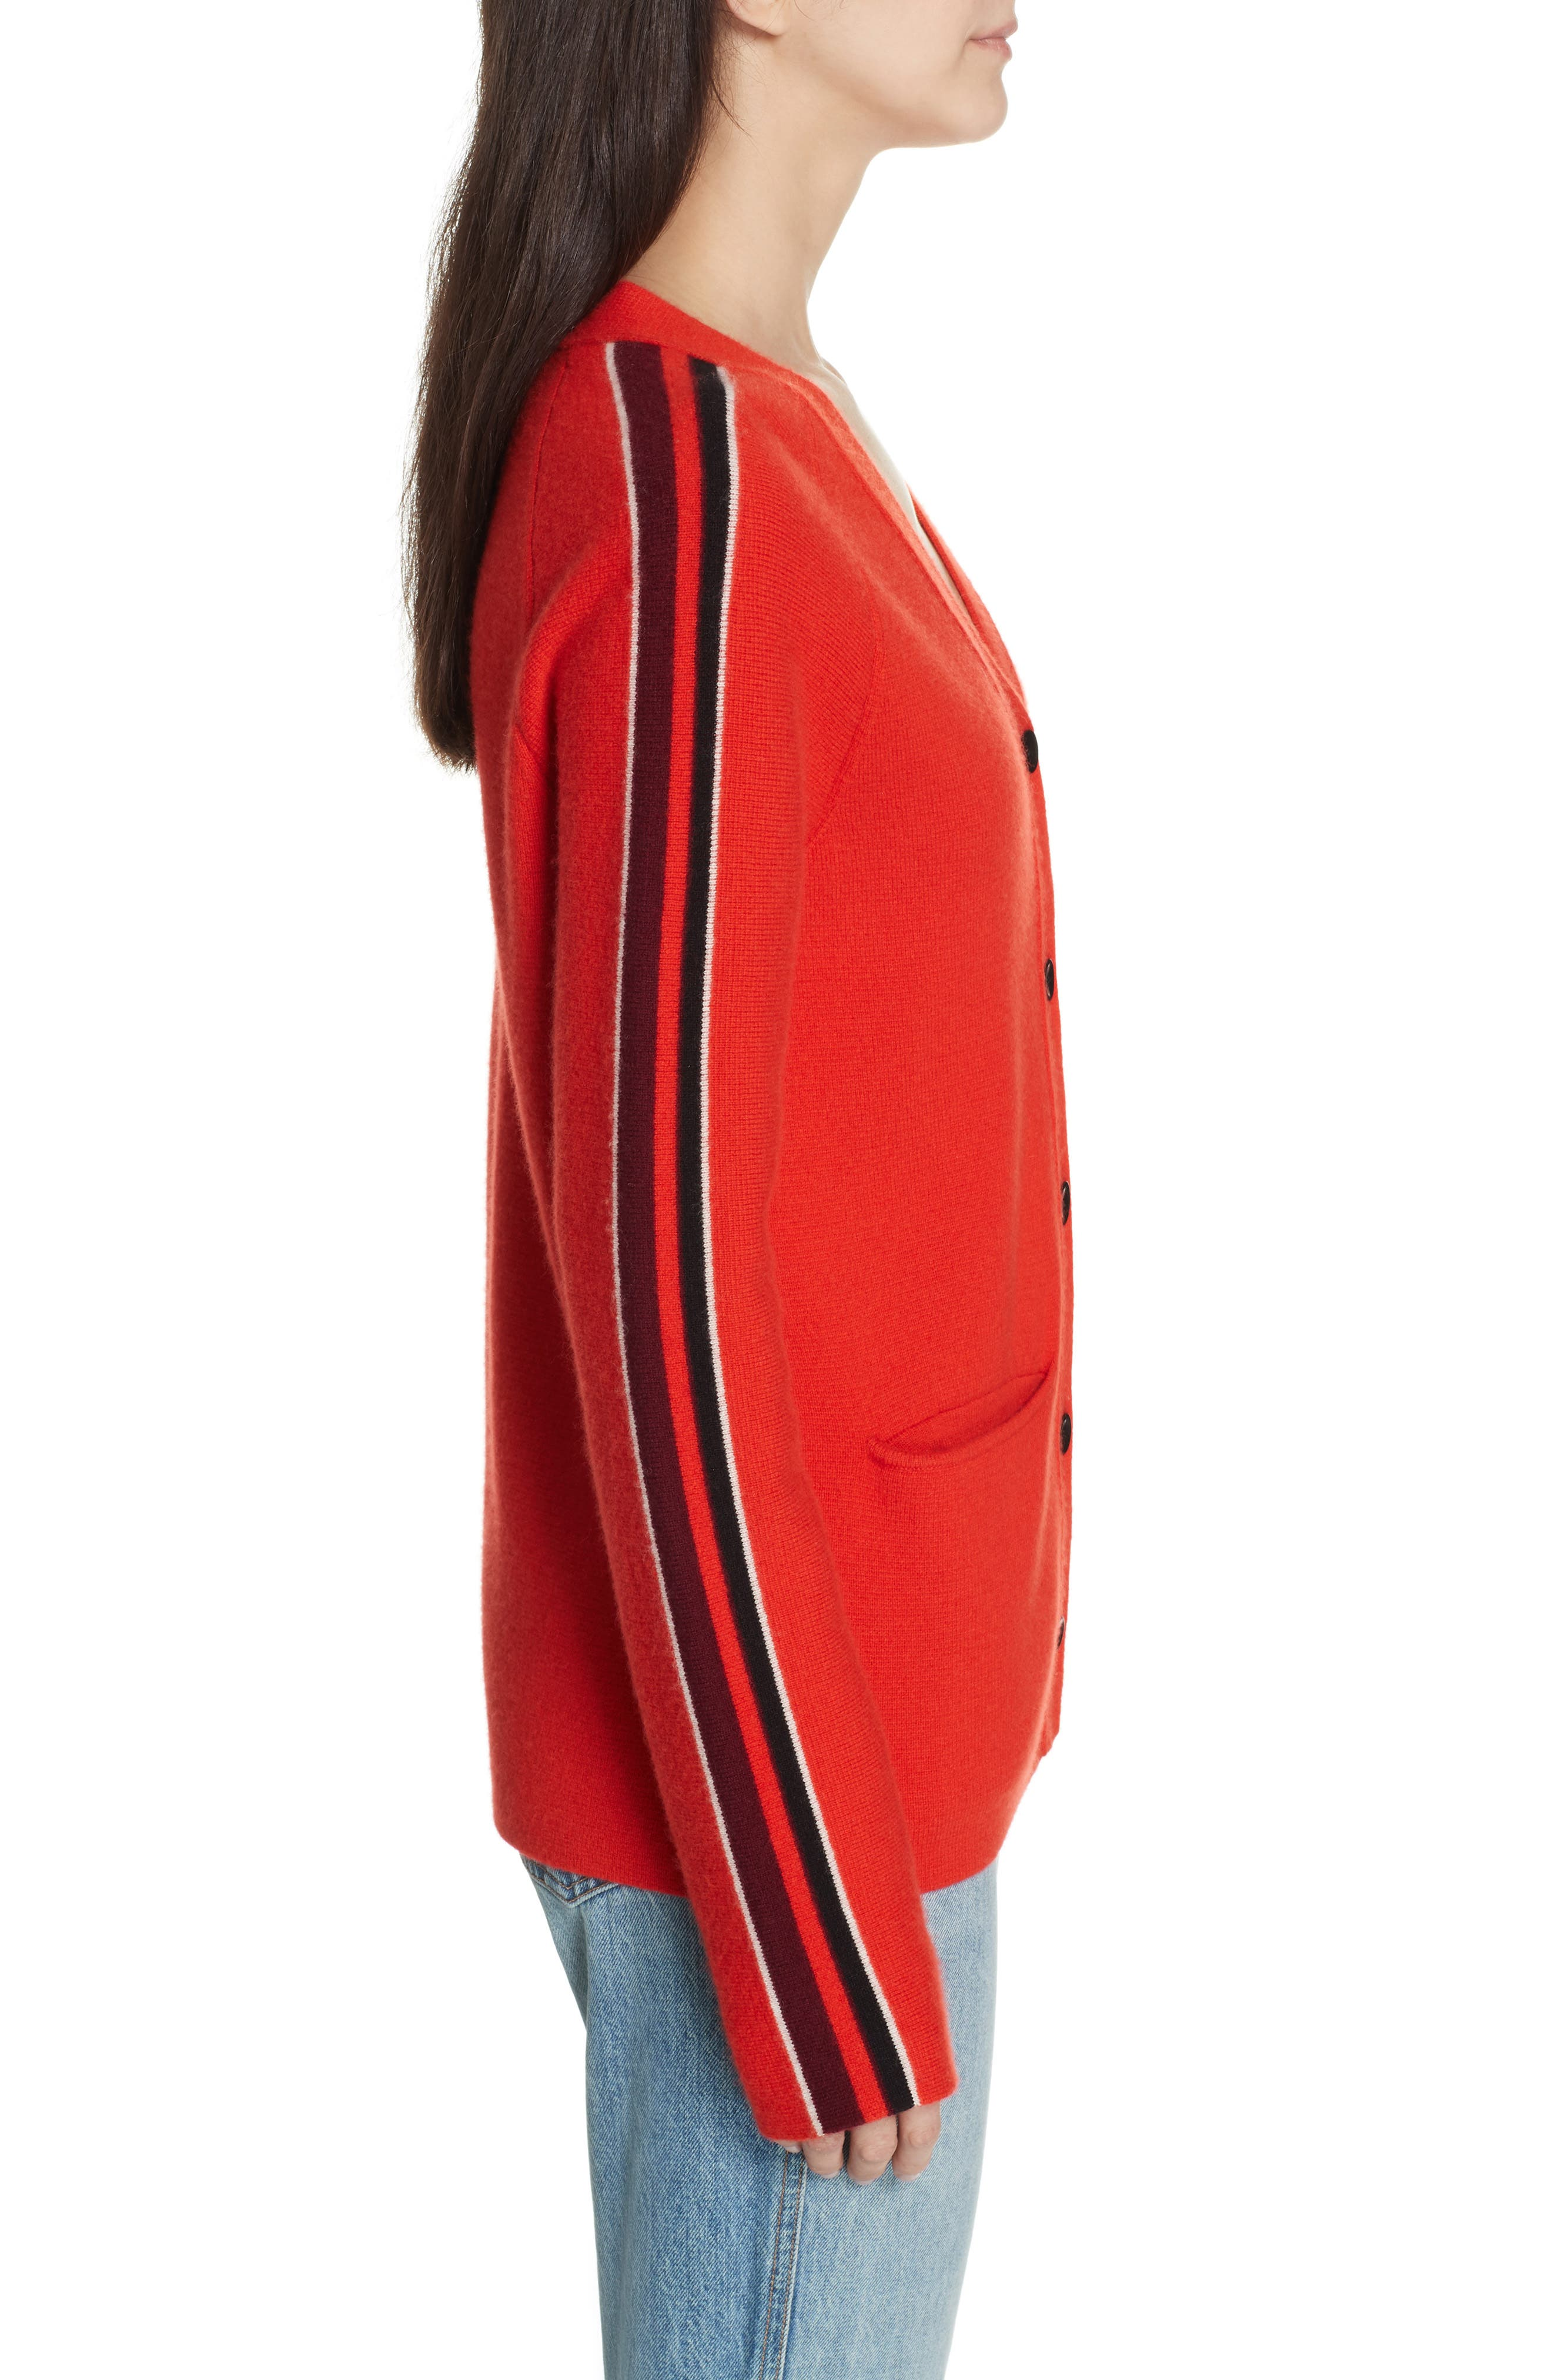 PROENZA SCHOULER, PSWL Stripe Sleeve Merino Wool & Cashmere Cardigan, Alternate thumbnail 3, color, RED COMBO